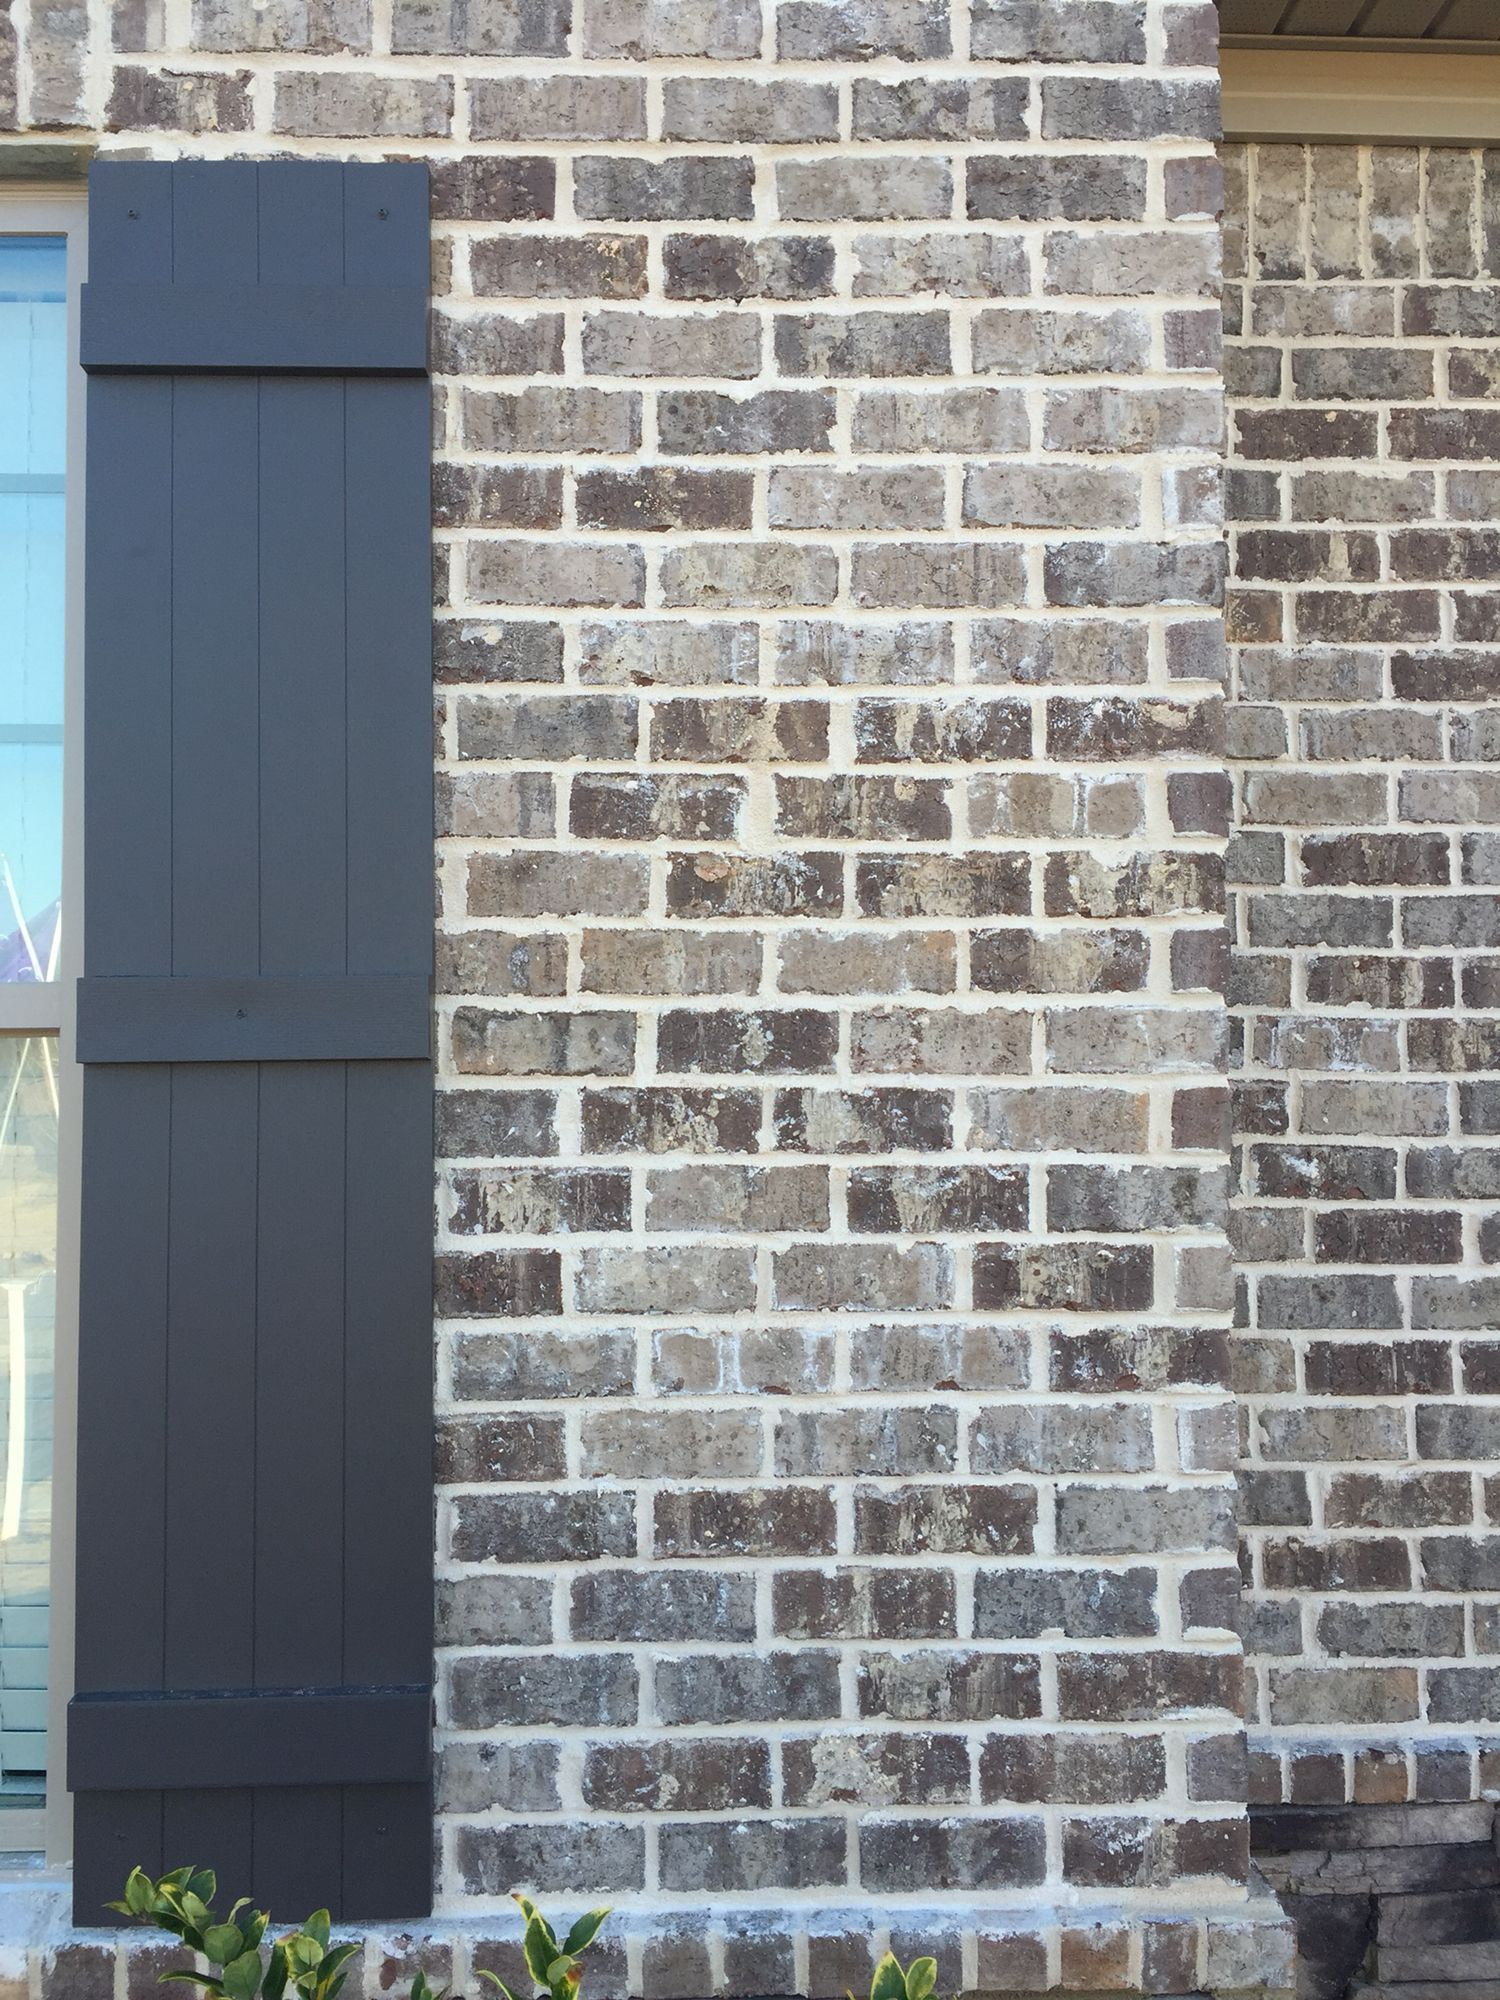 Mortar Color Gray : Pine hall brick marshton queen with ivory mortar